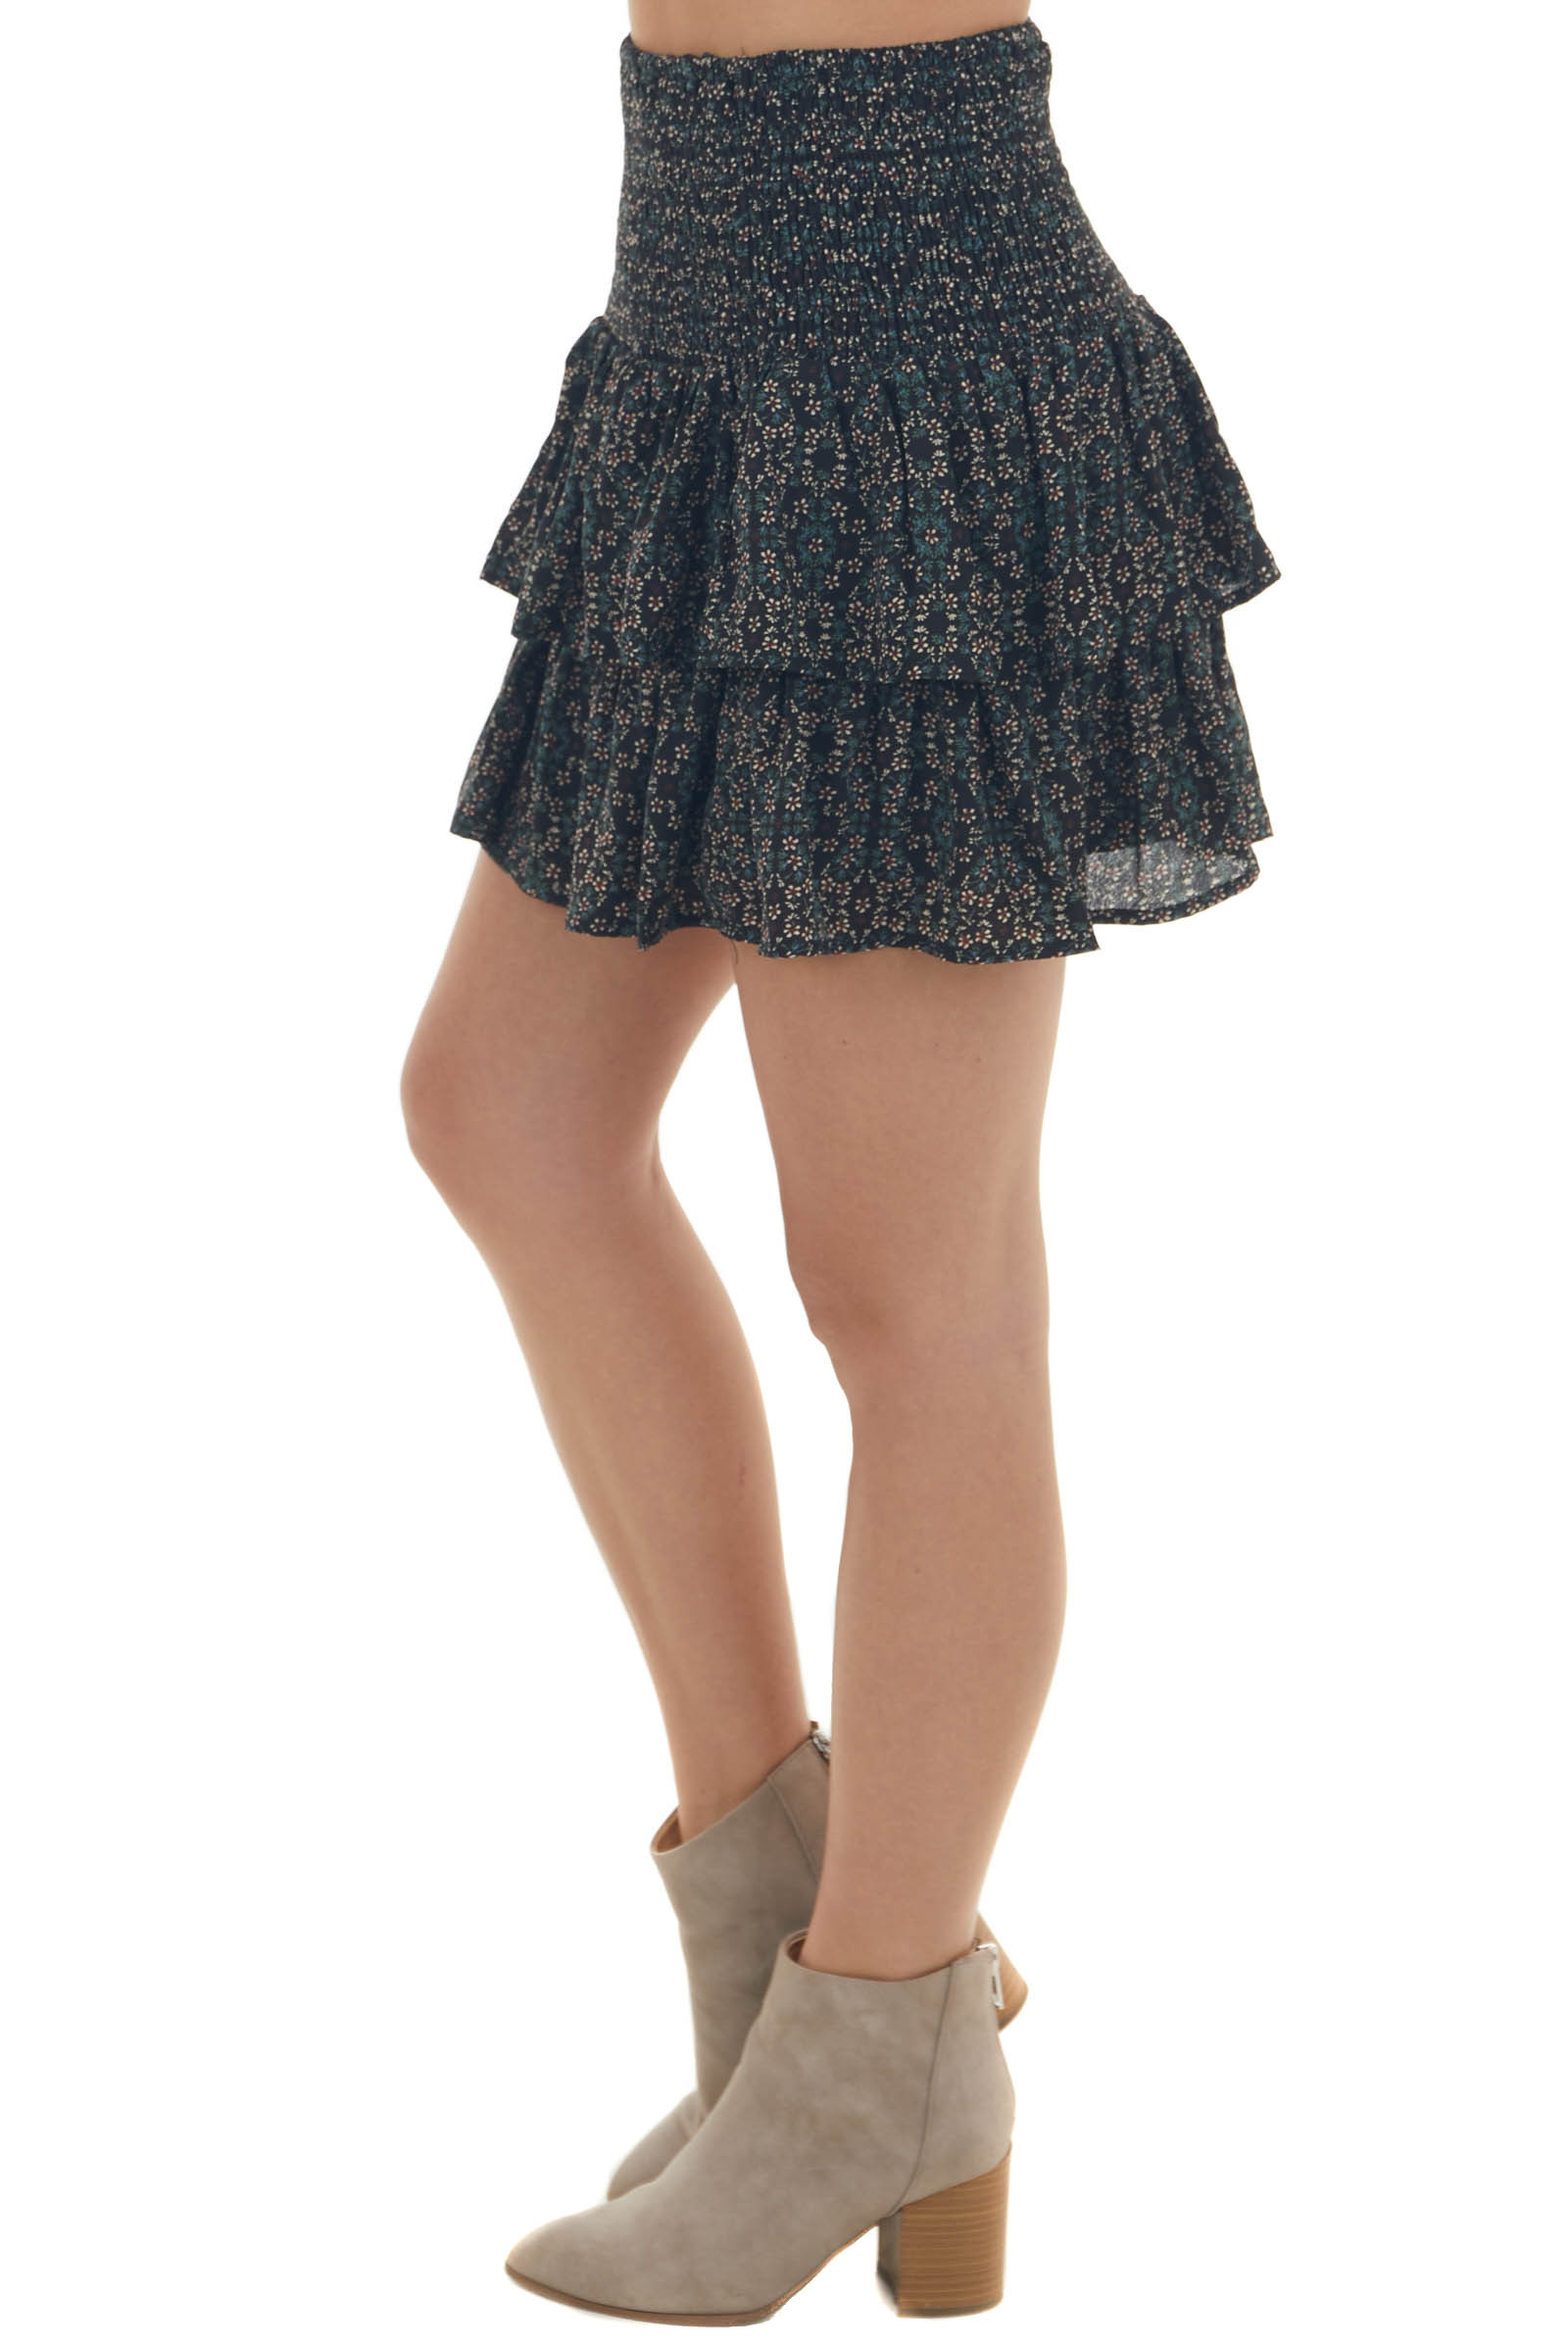 Black Ditsy Floral Smocked Tiered Mini Skirt